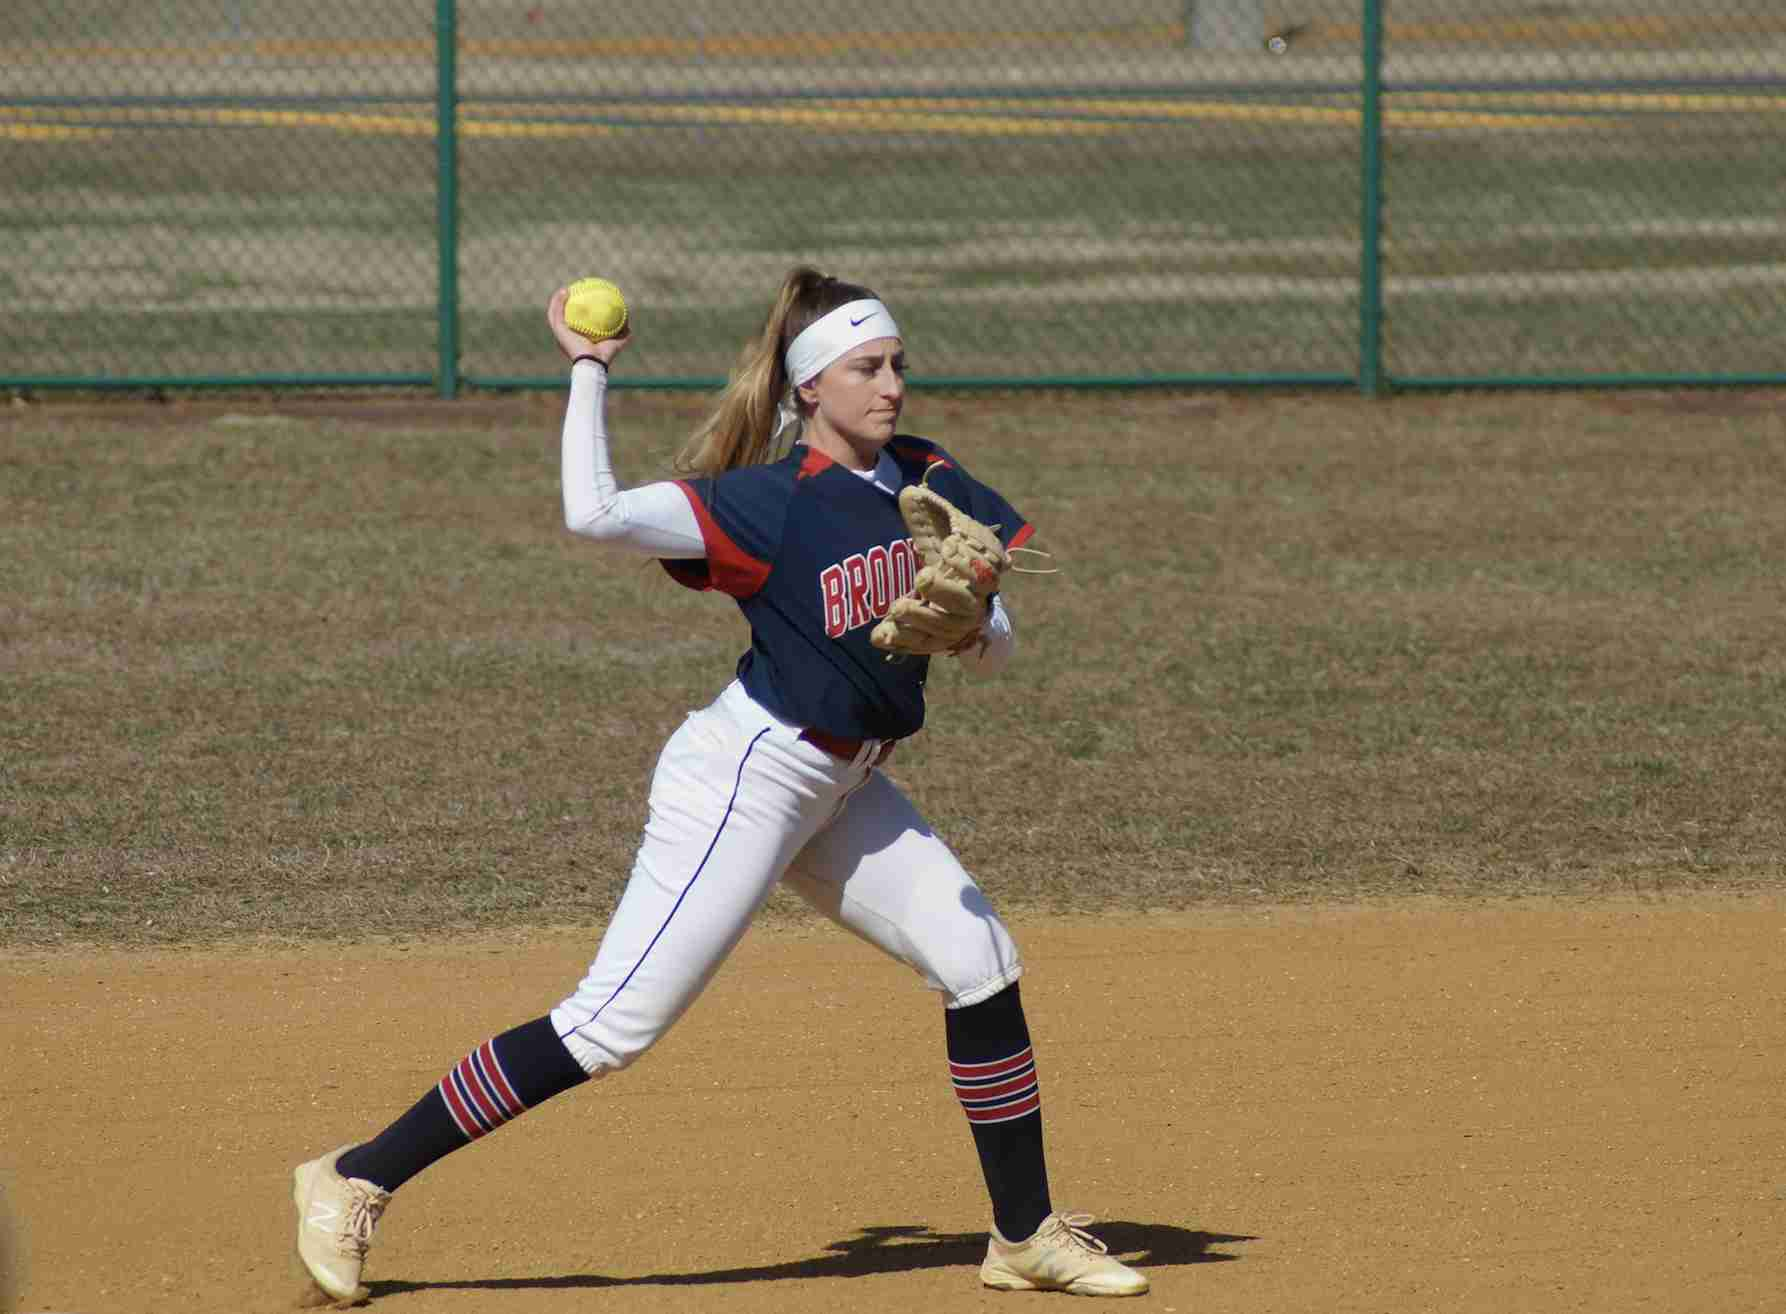 Brookdale Softball lincroft nj 2019